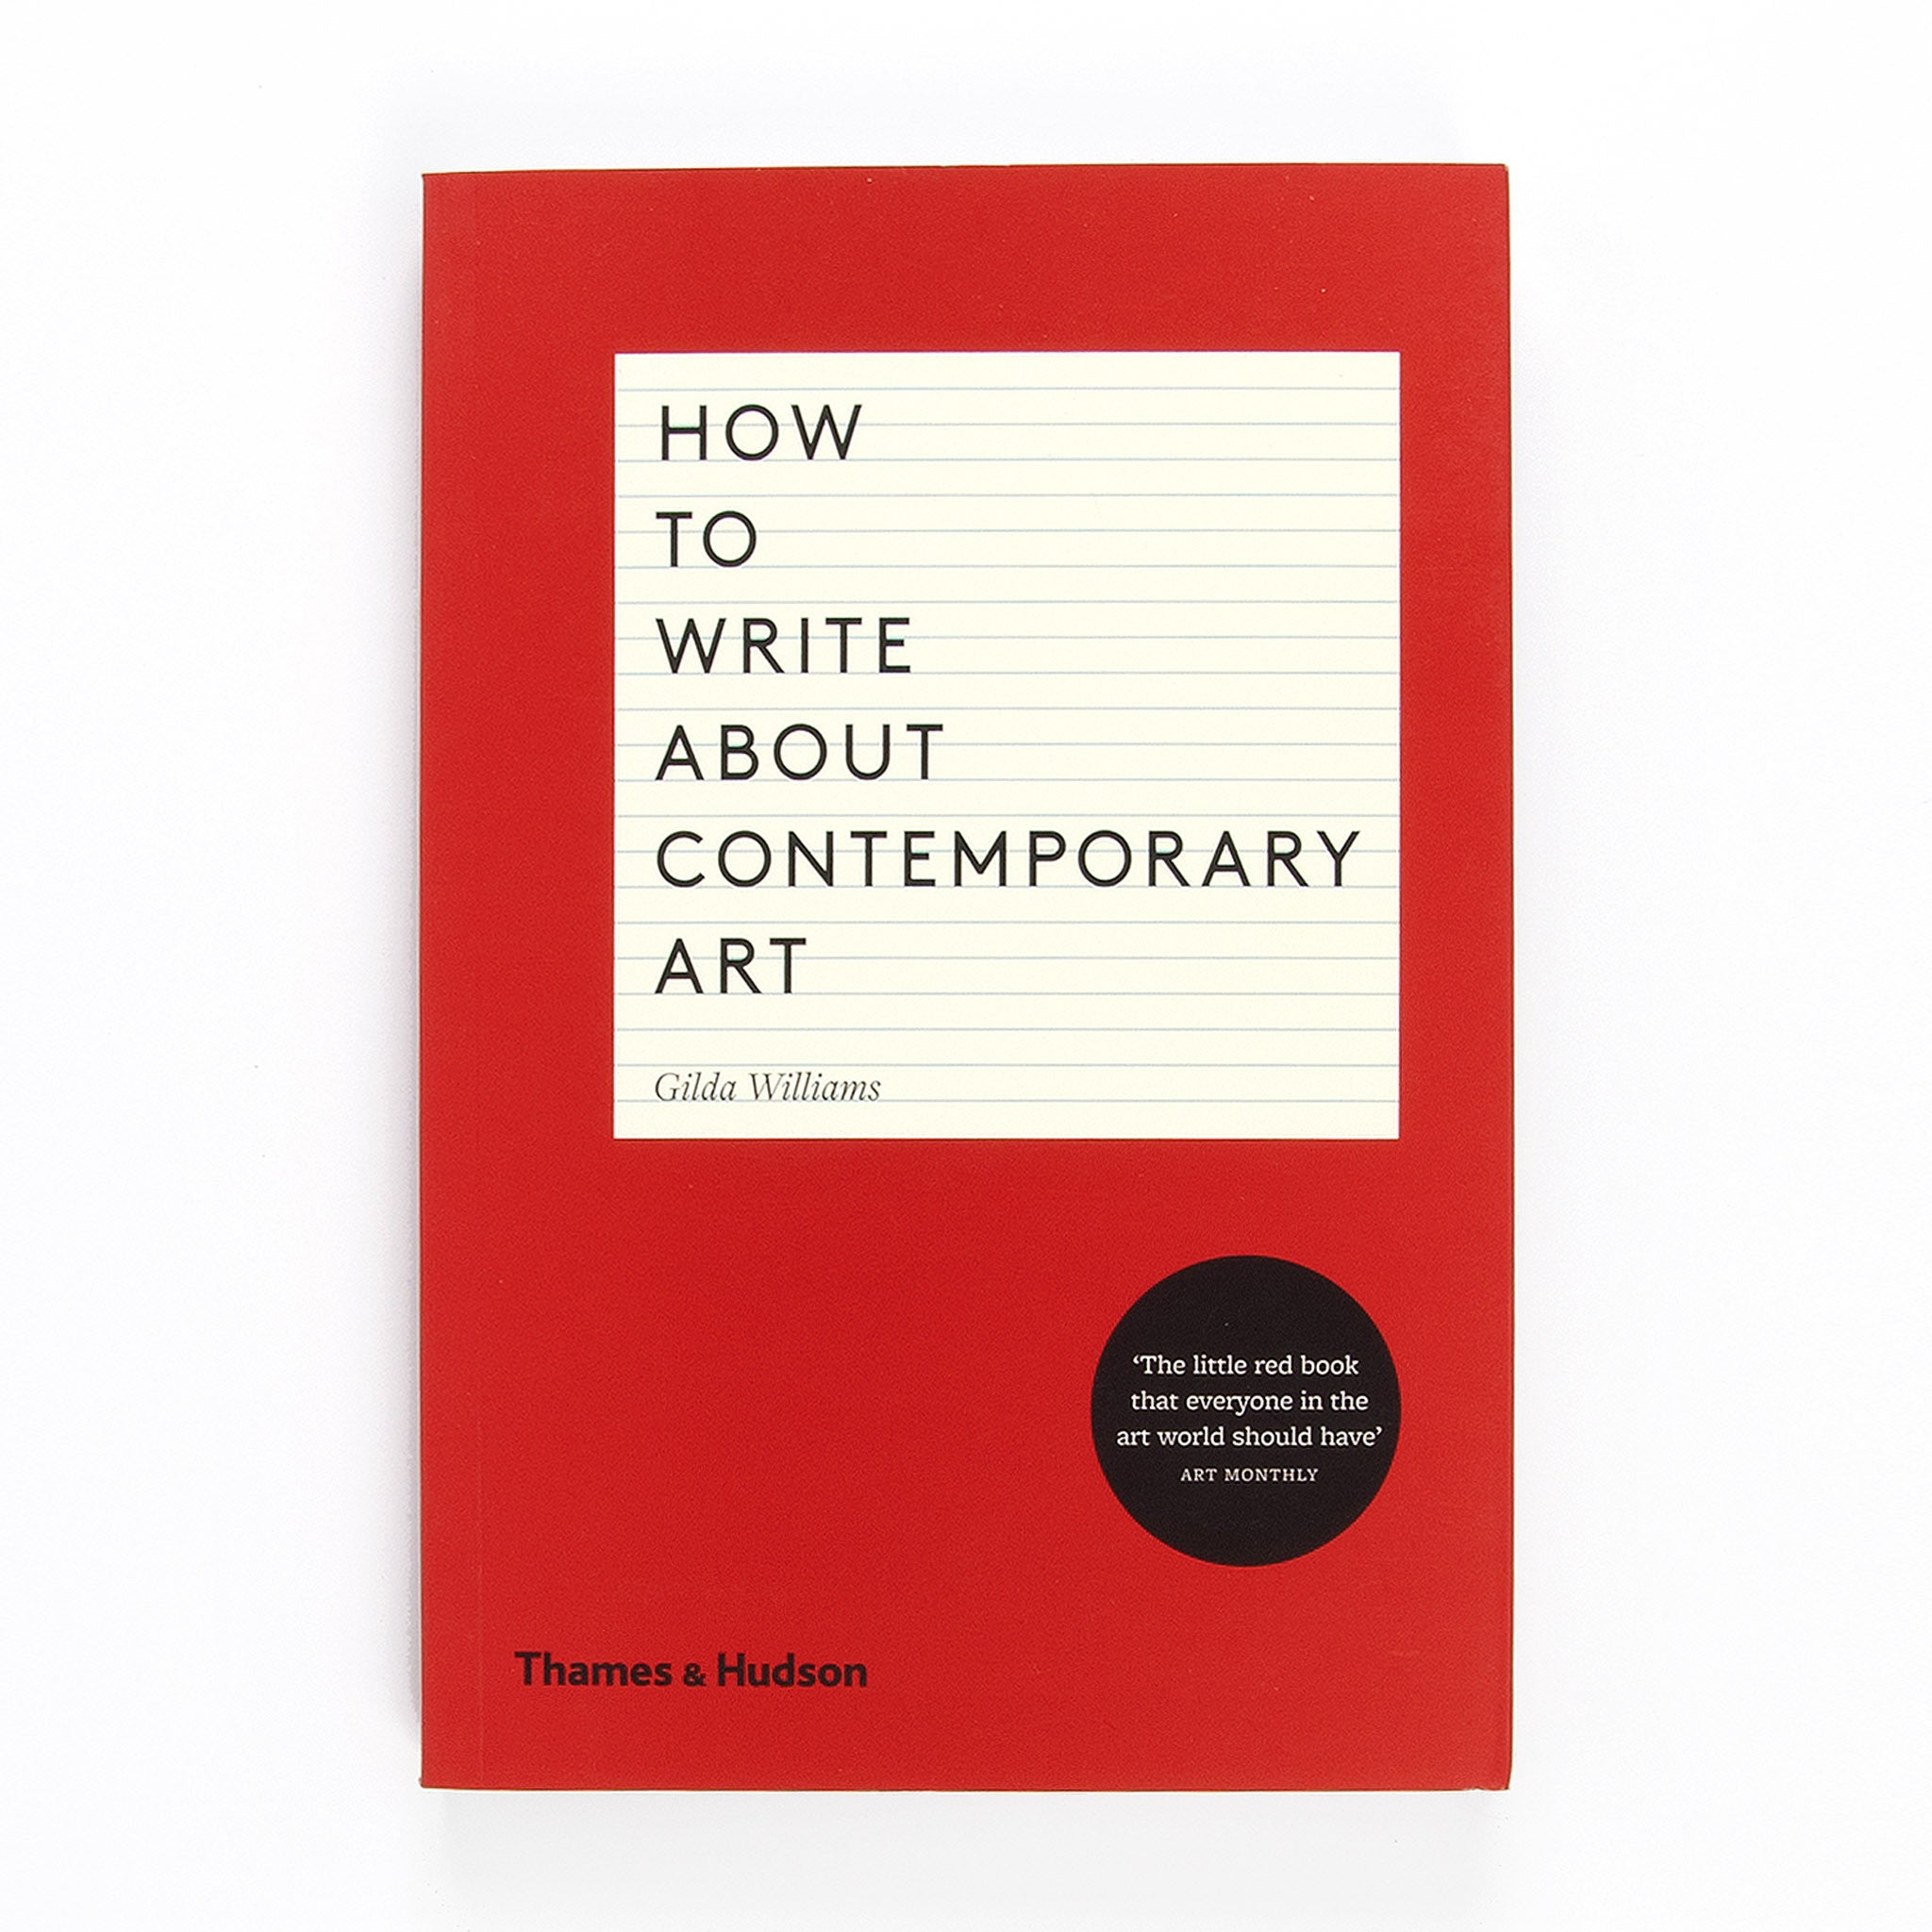 How to Write About Contemporary Art Image